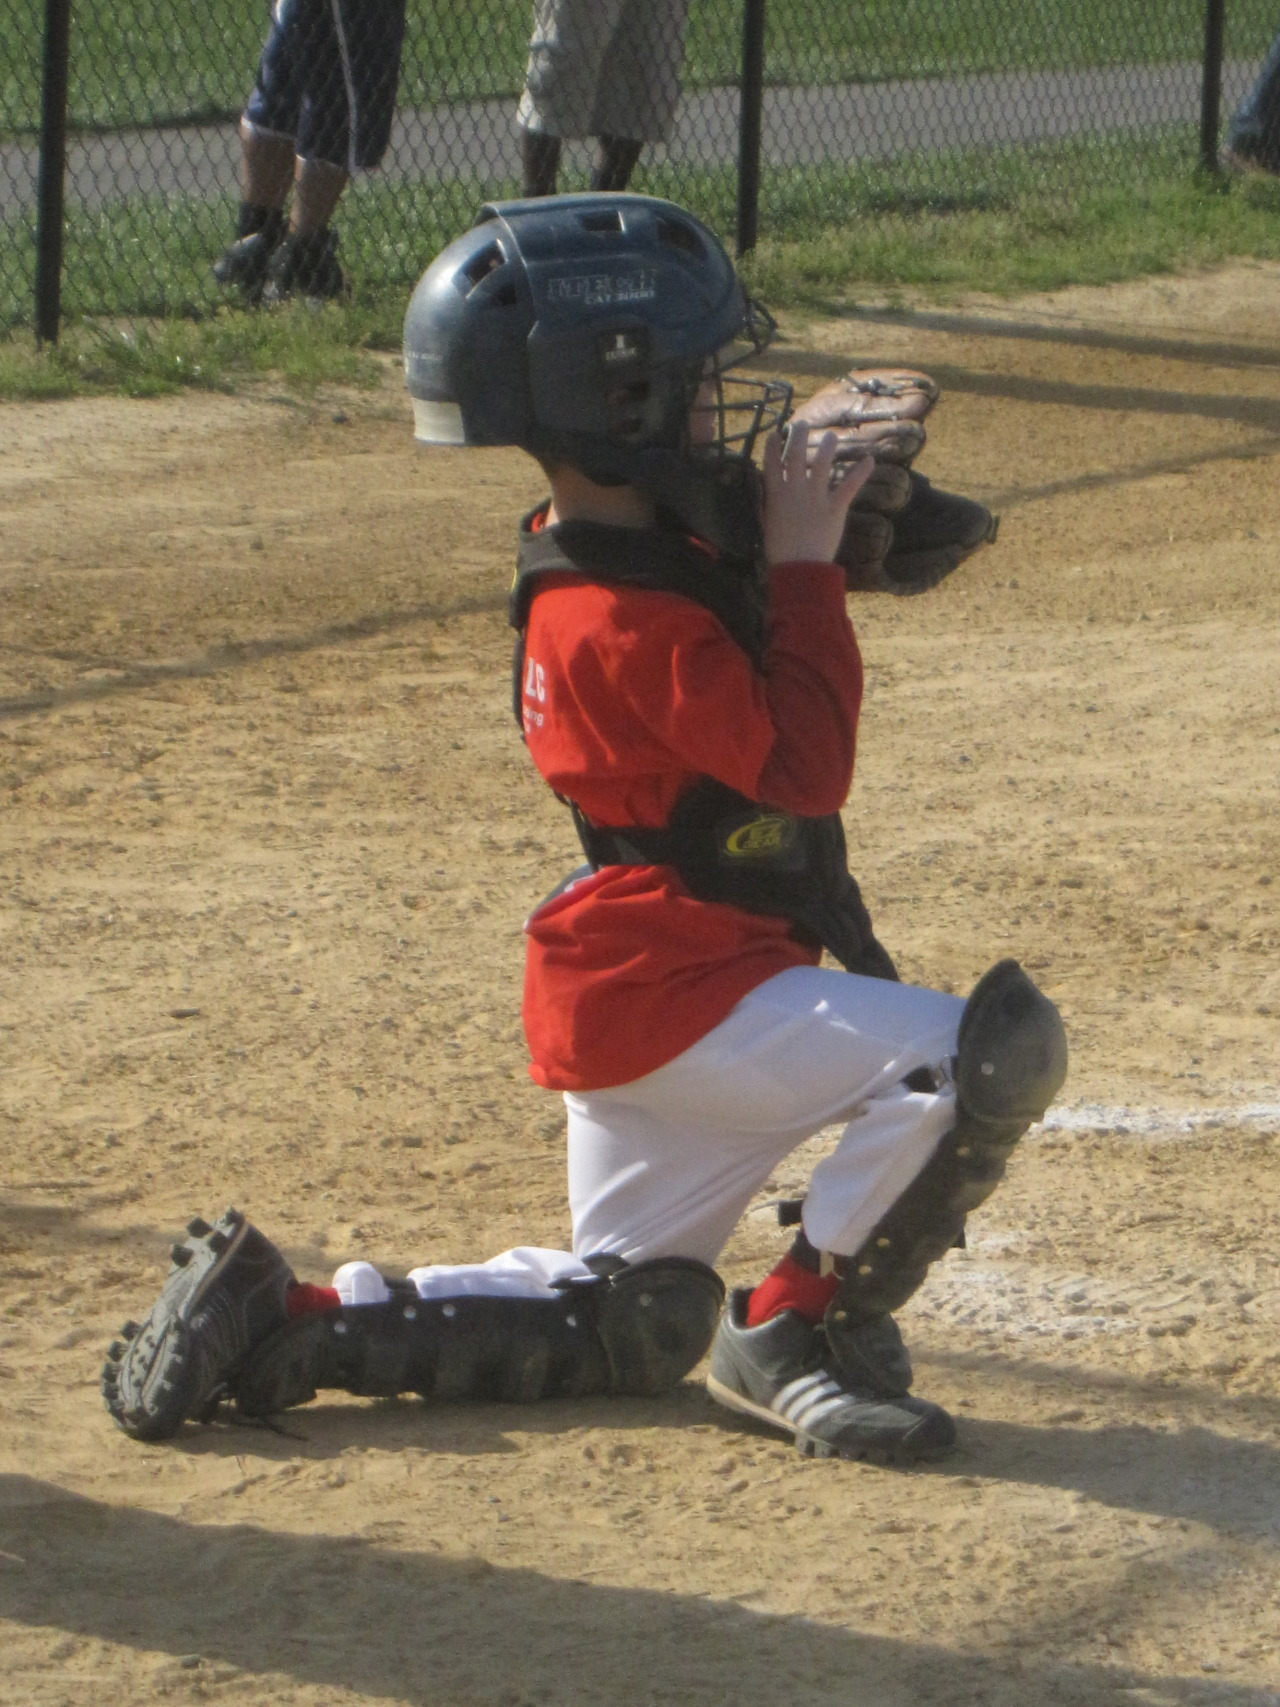 The Boy wanted to play catcher at our most recent game. When I asked him why he told me it was because it's the position I played. We went on to win 3-1 and he was instrumental in the game-winning run. What a great kid!